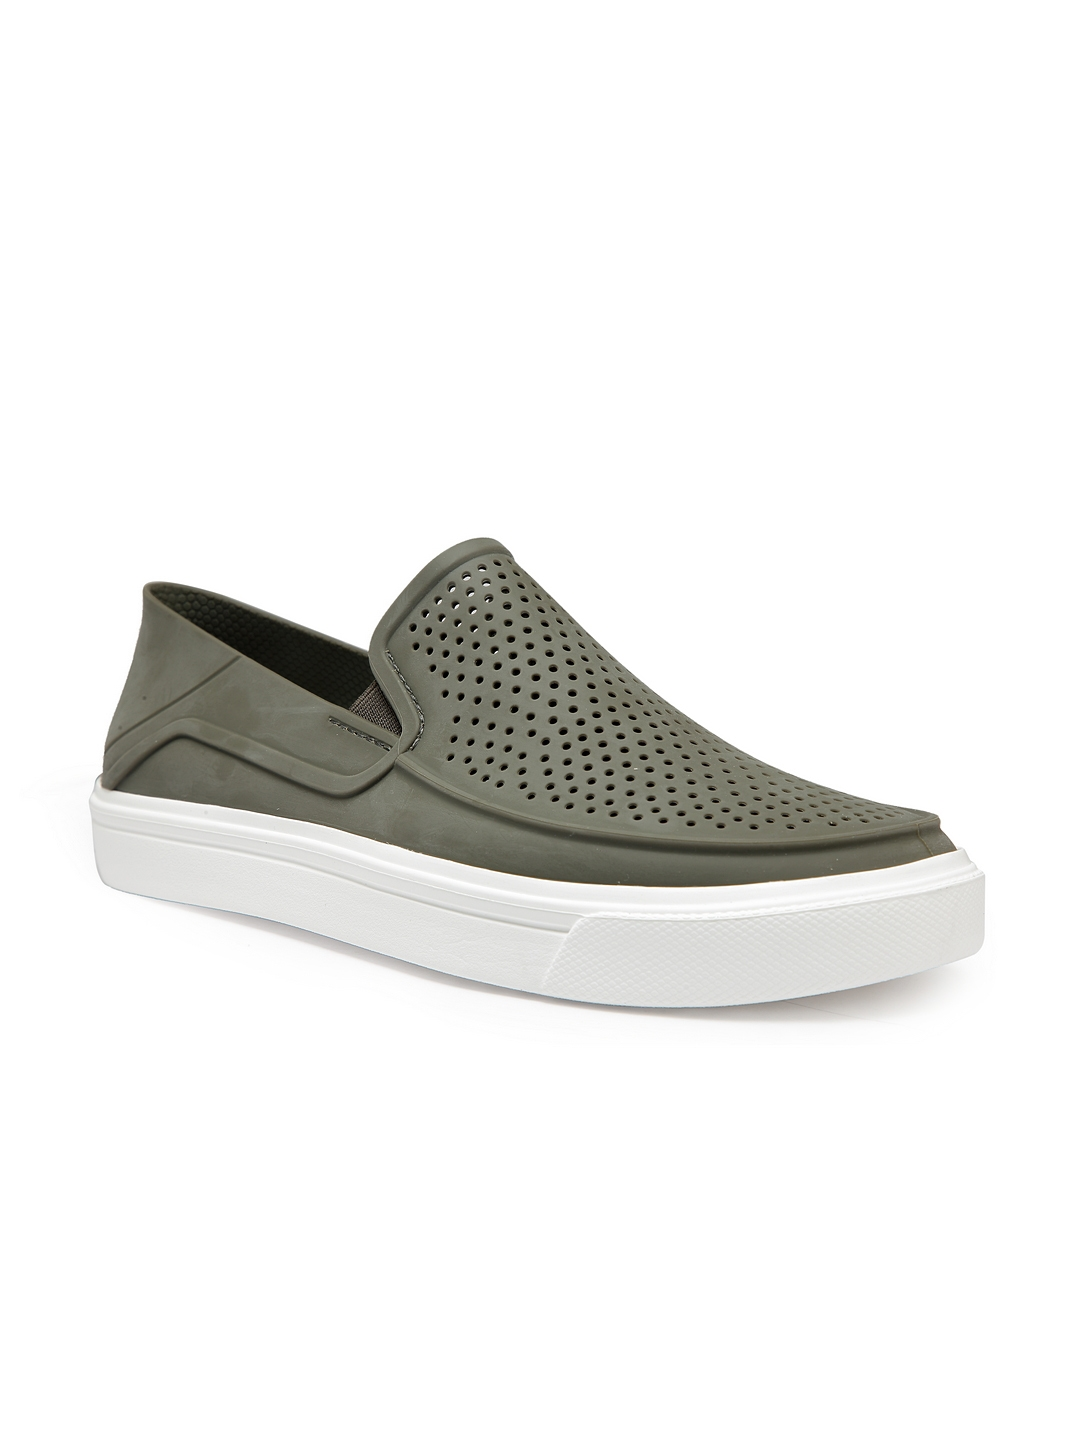 632a51912 Buy Crocs Men Green Slip On Sneakers - Casual Shoes for Men 7177545 ...